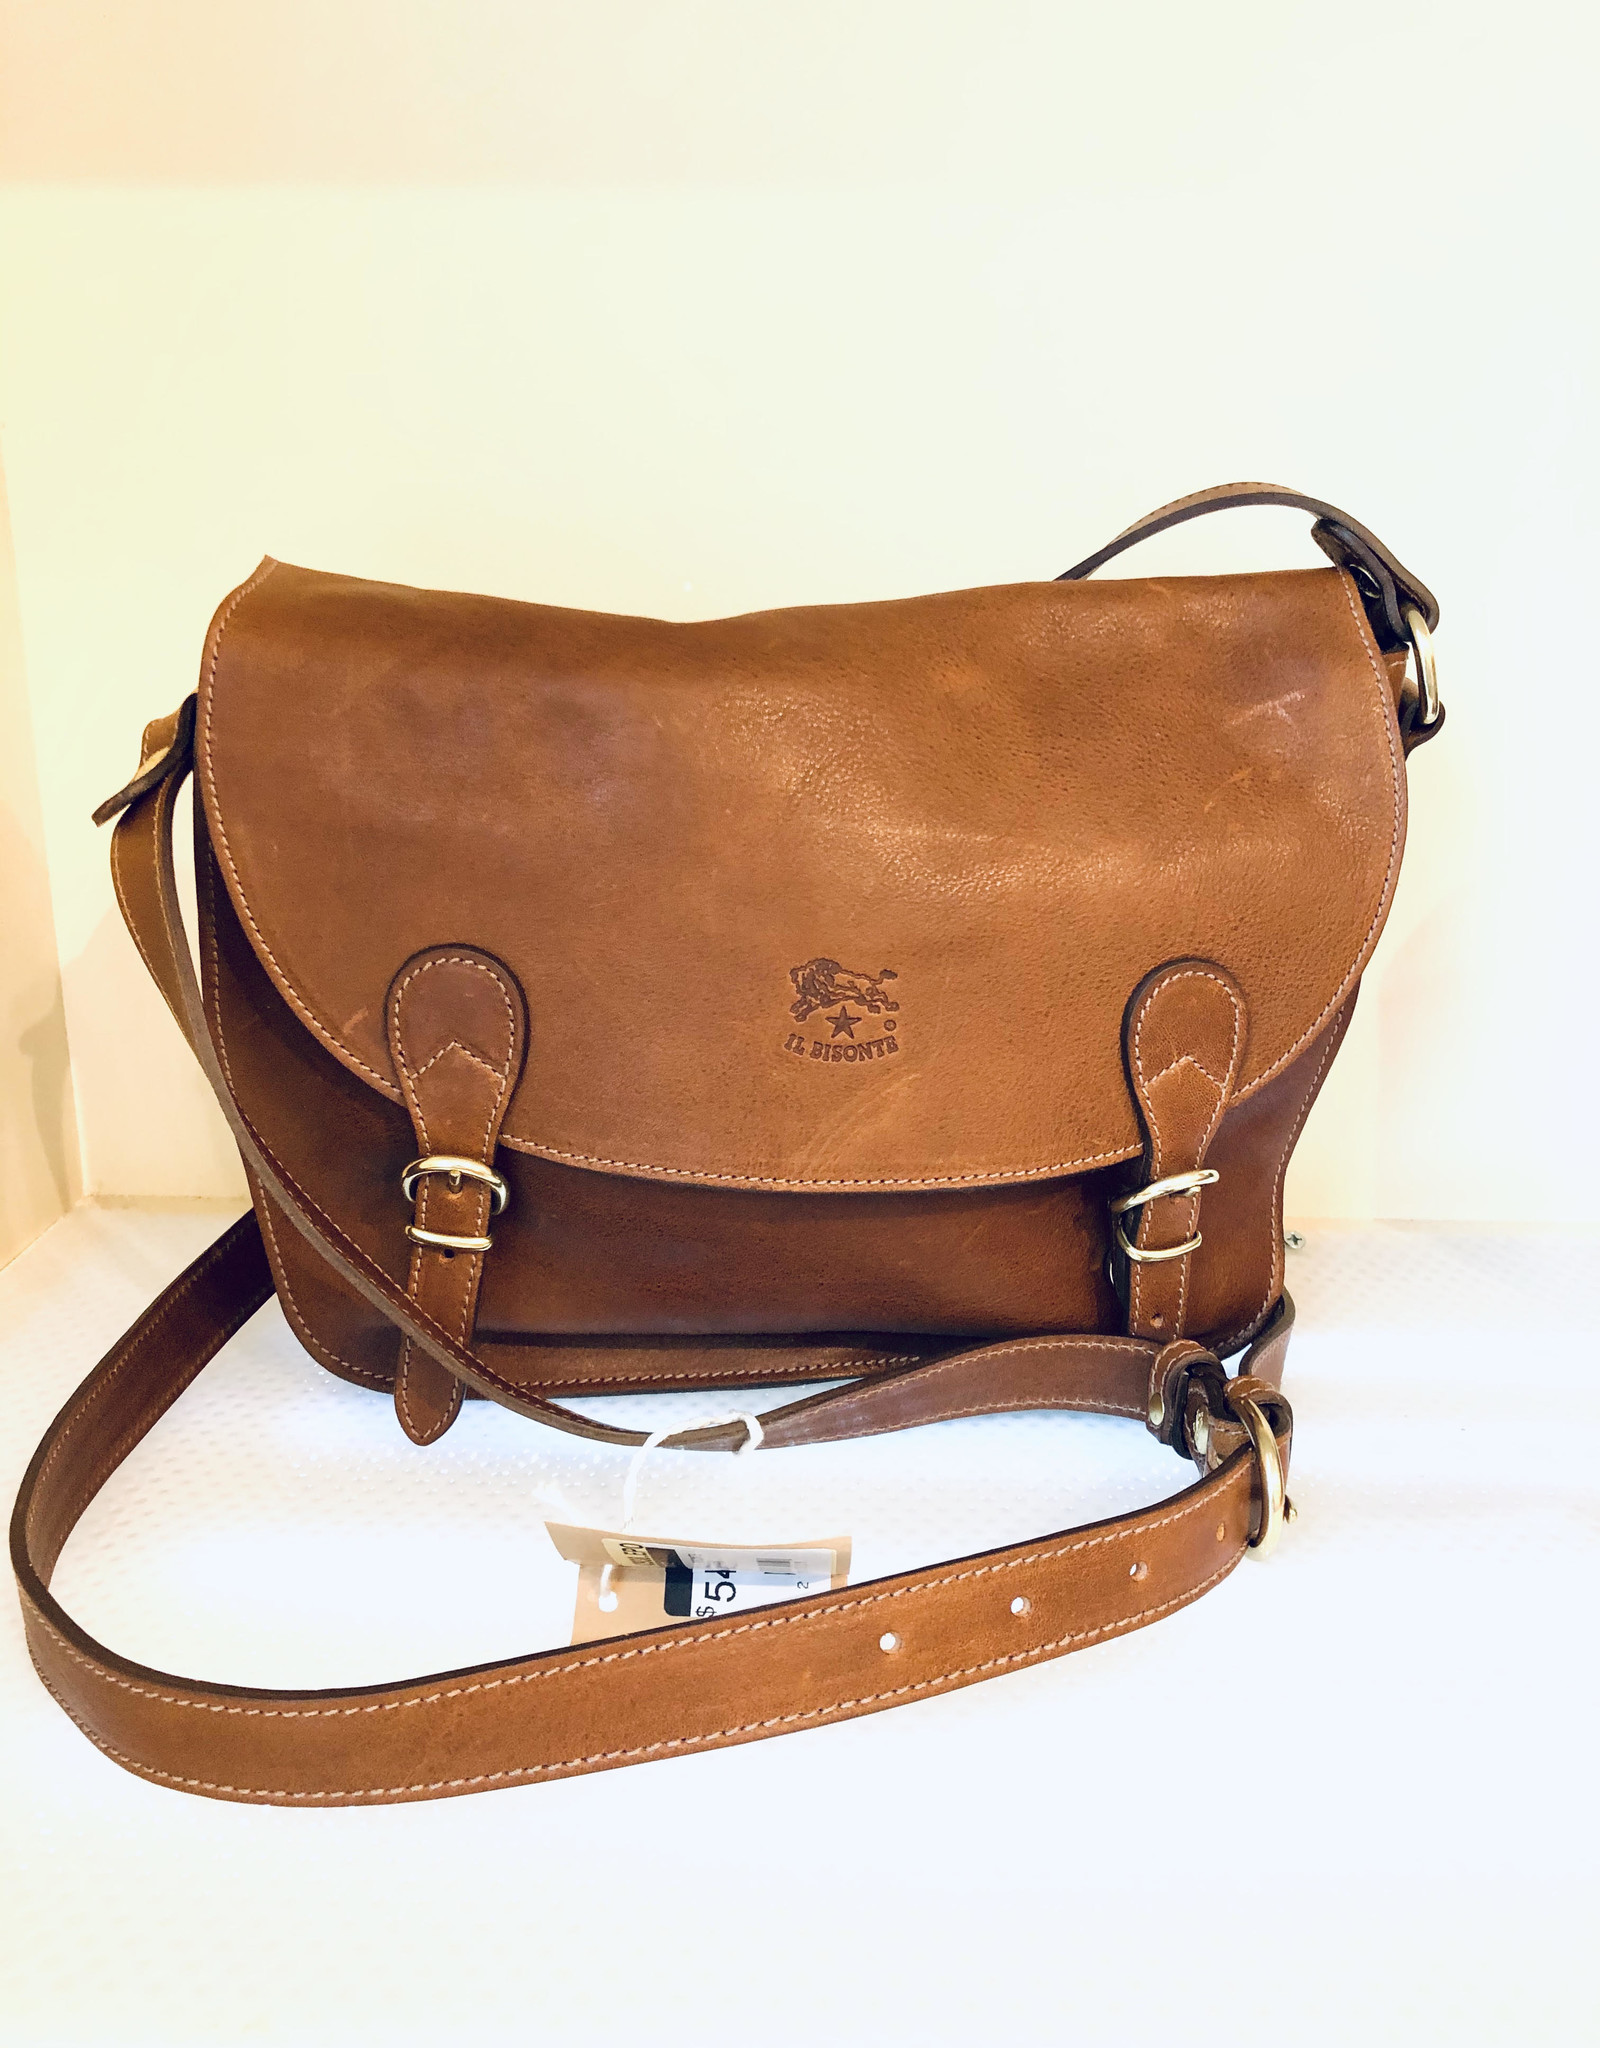 IL BISONTE - Saddle Bag